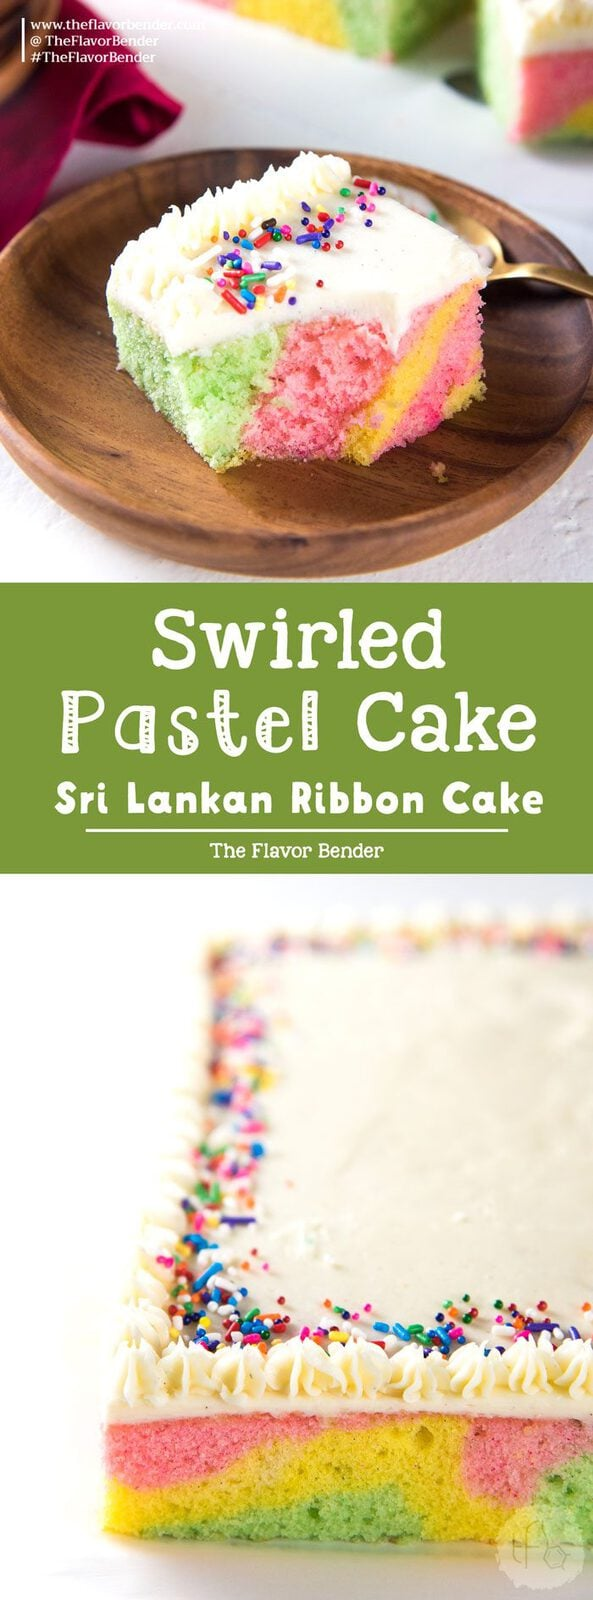 Swirled Pastel Cake (Ribbon Cake) - a delicious vanilla cake with pastel swirls, and vanilla buttercream frosting. Perfect for birthdays, and celebrations like Easter! #SwirledPastelCake #PastelSheetCake #RibbonCake #VanillaCake